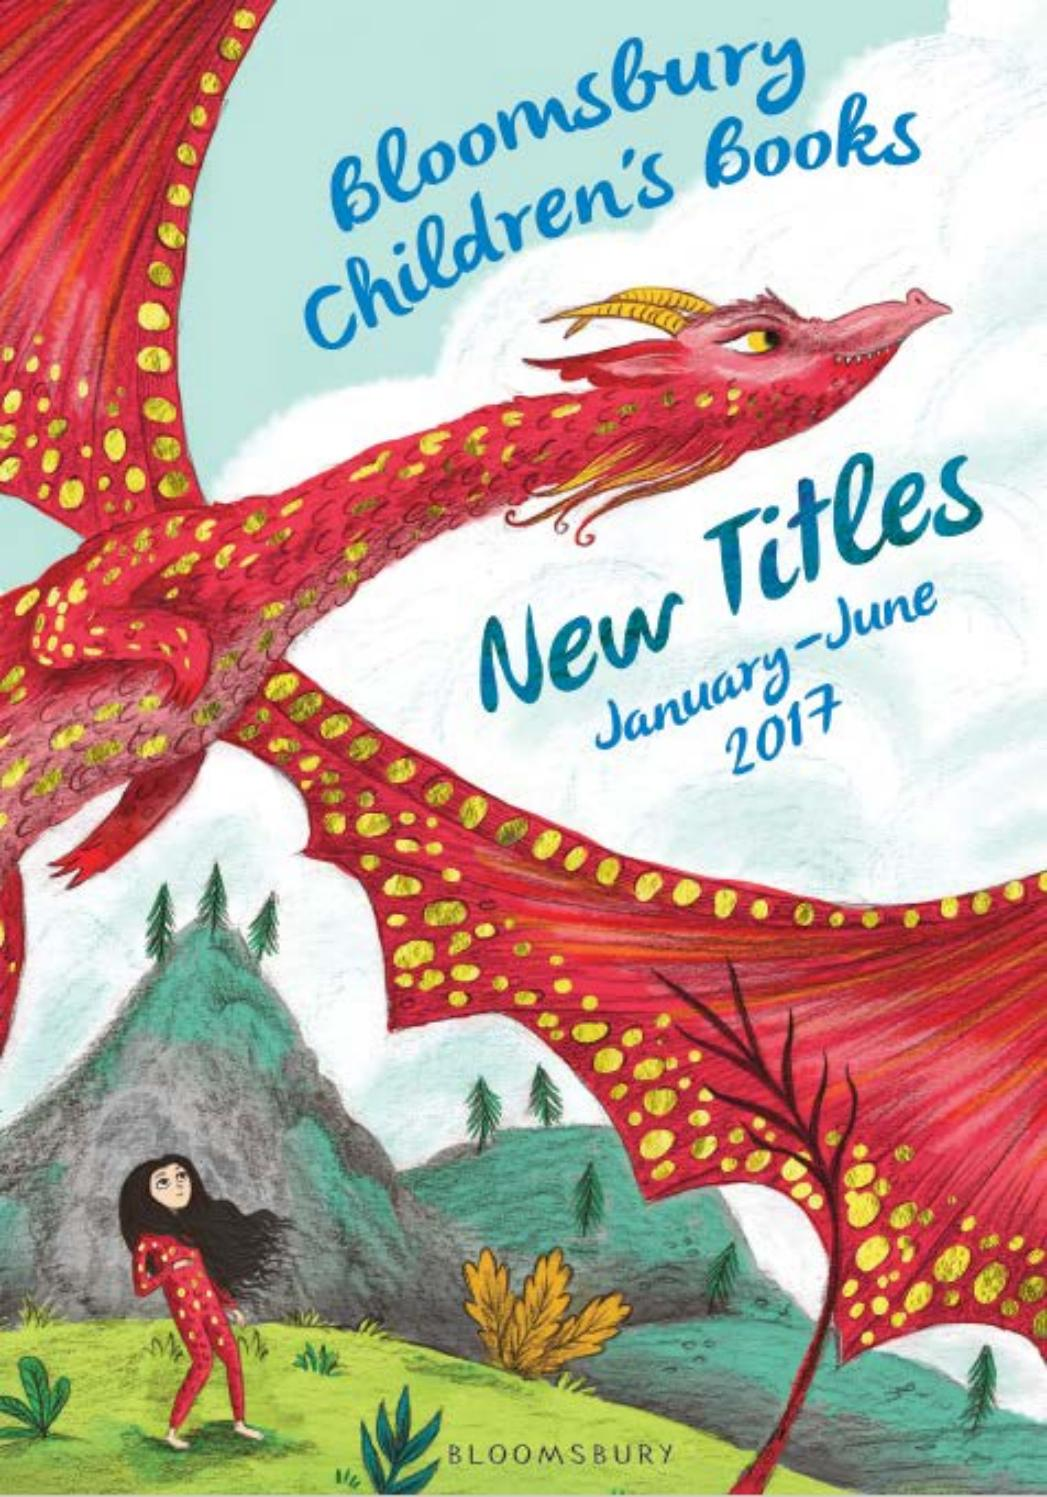 Bloomsbury Children's Books New Titles Catalogue - January - June 2017 by  Bloomsbury Publishing - issuu